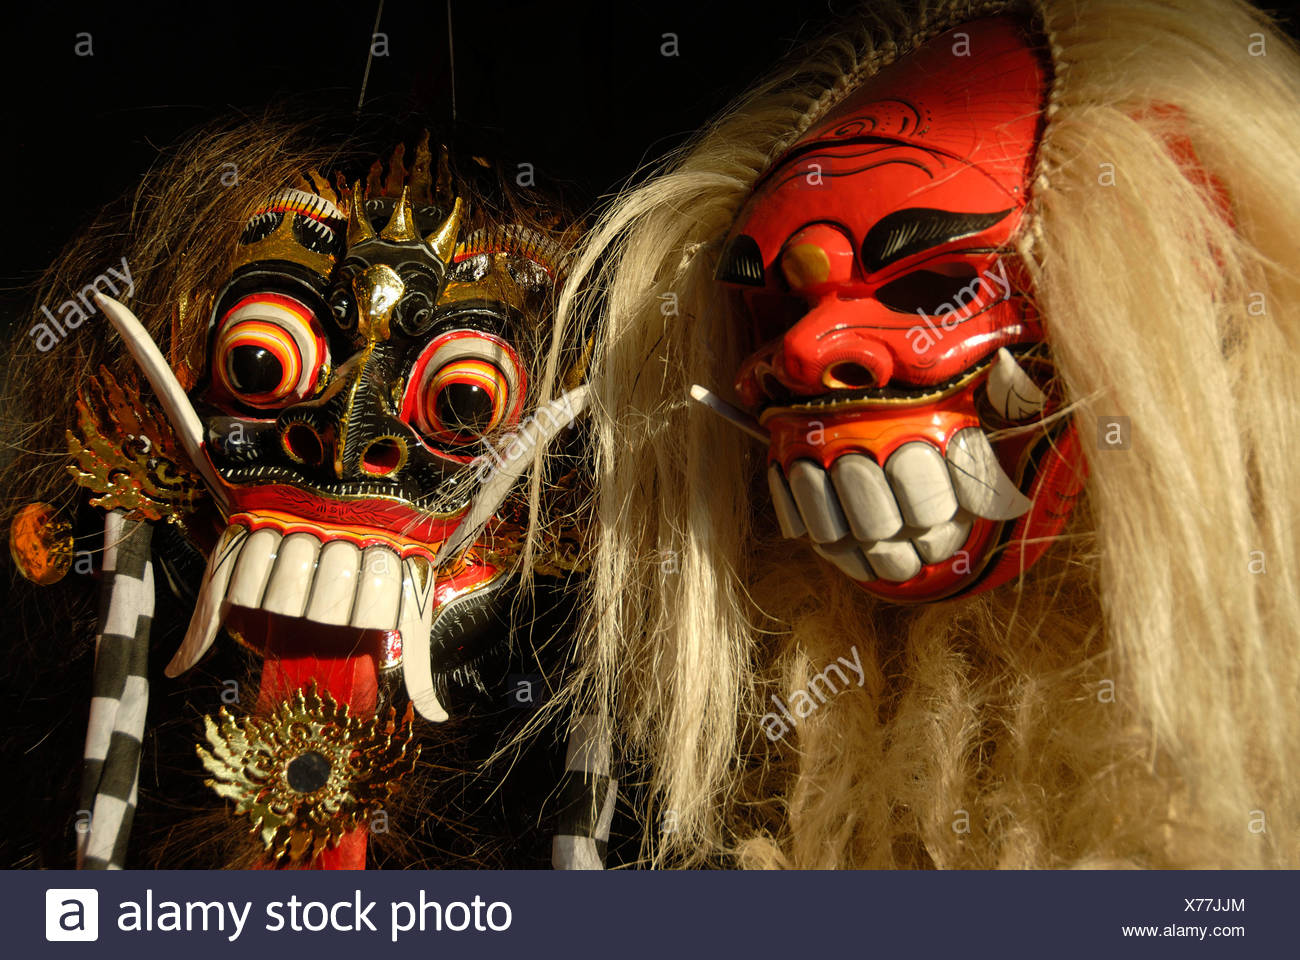 Arts and culture, Barong and Rangda masks, terrible mystical mythical creatures, Ubud, Bali, Indonesia, Southeast Asia, Asia - Stock Image